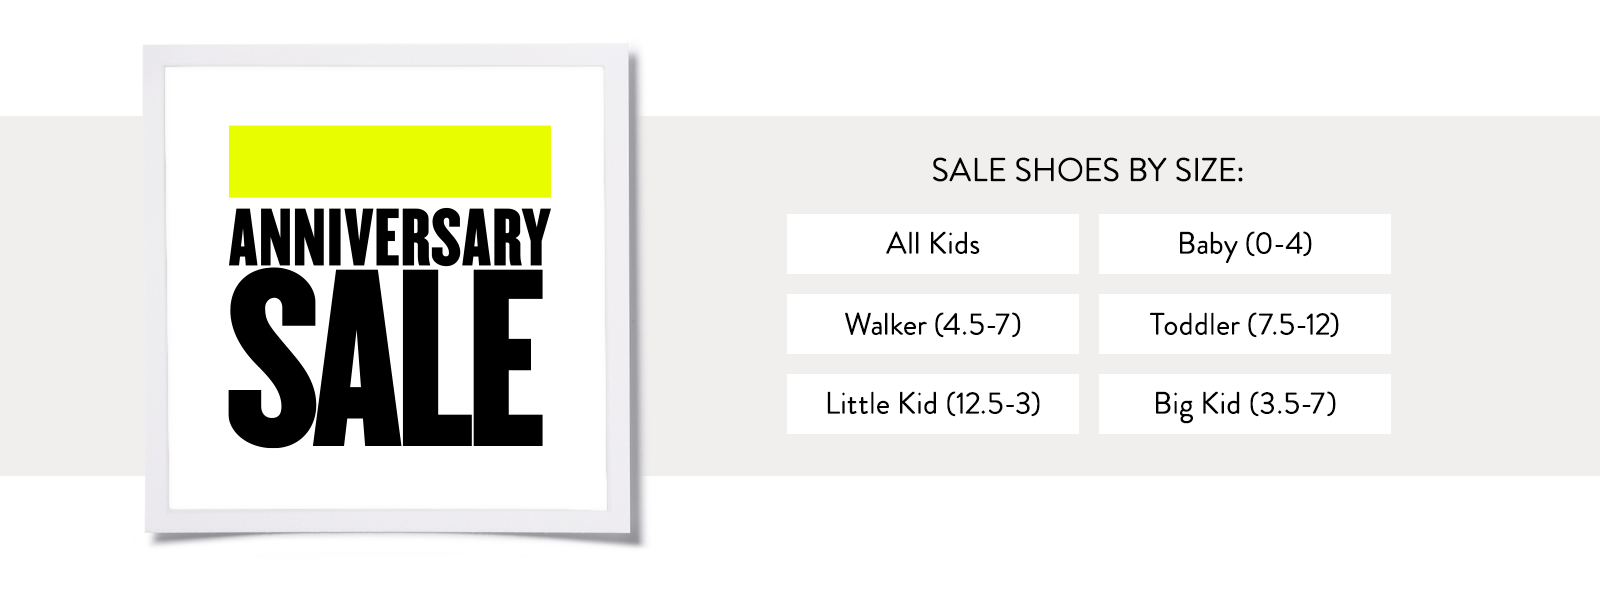 Sale Shoes by Size.